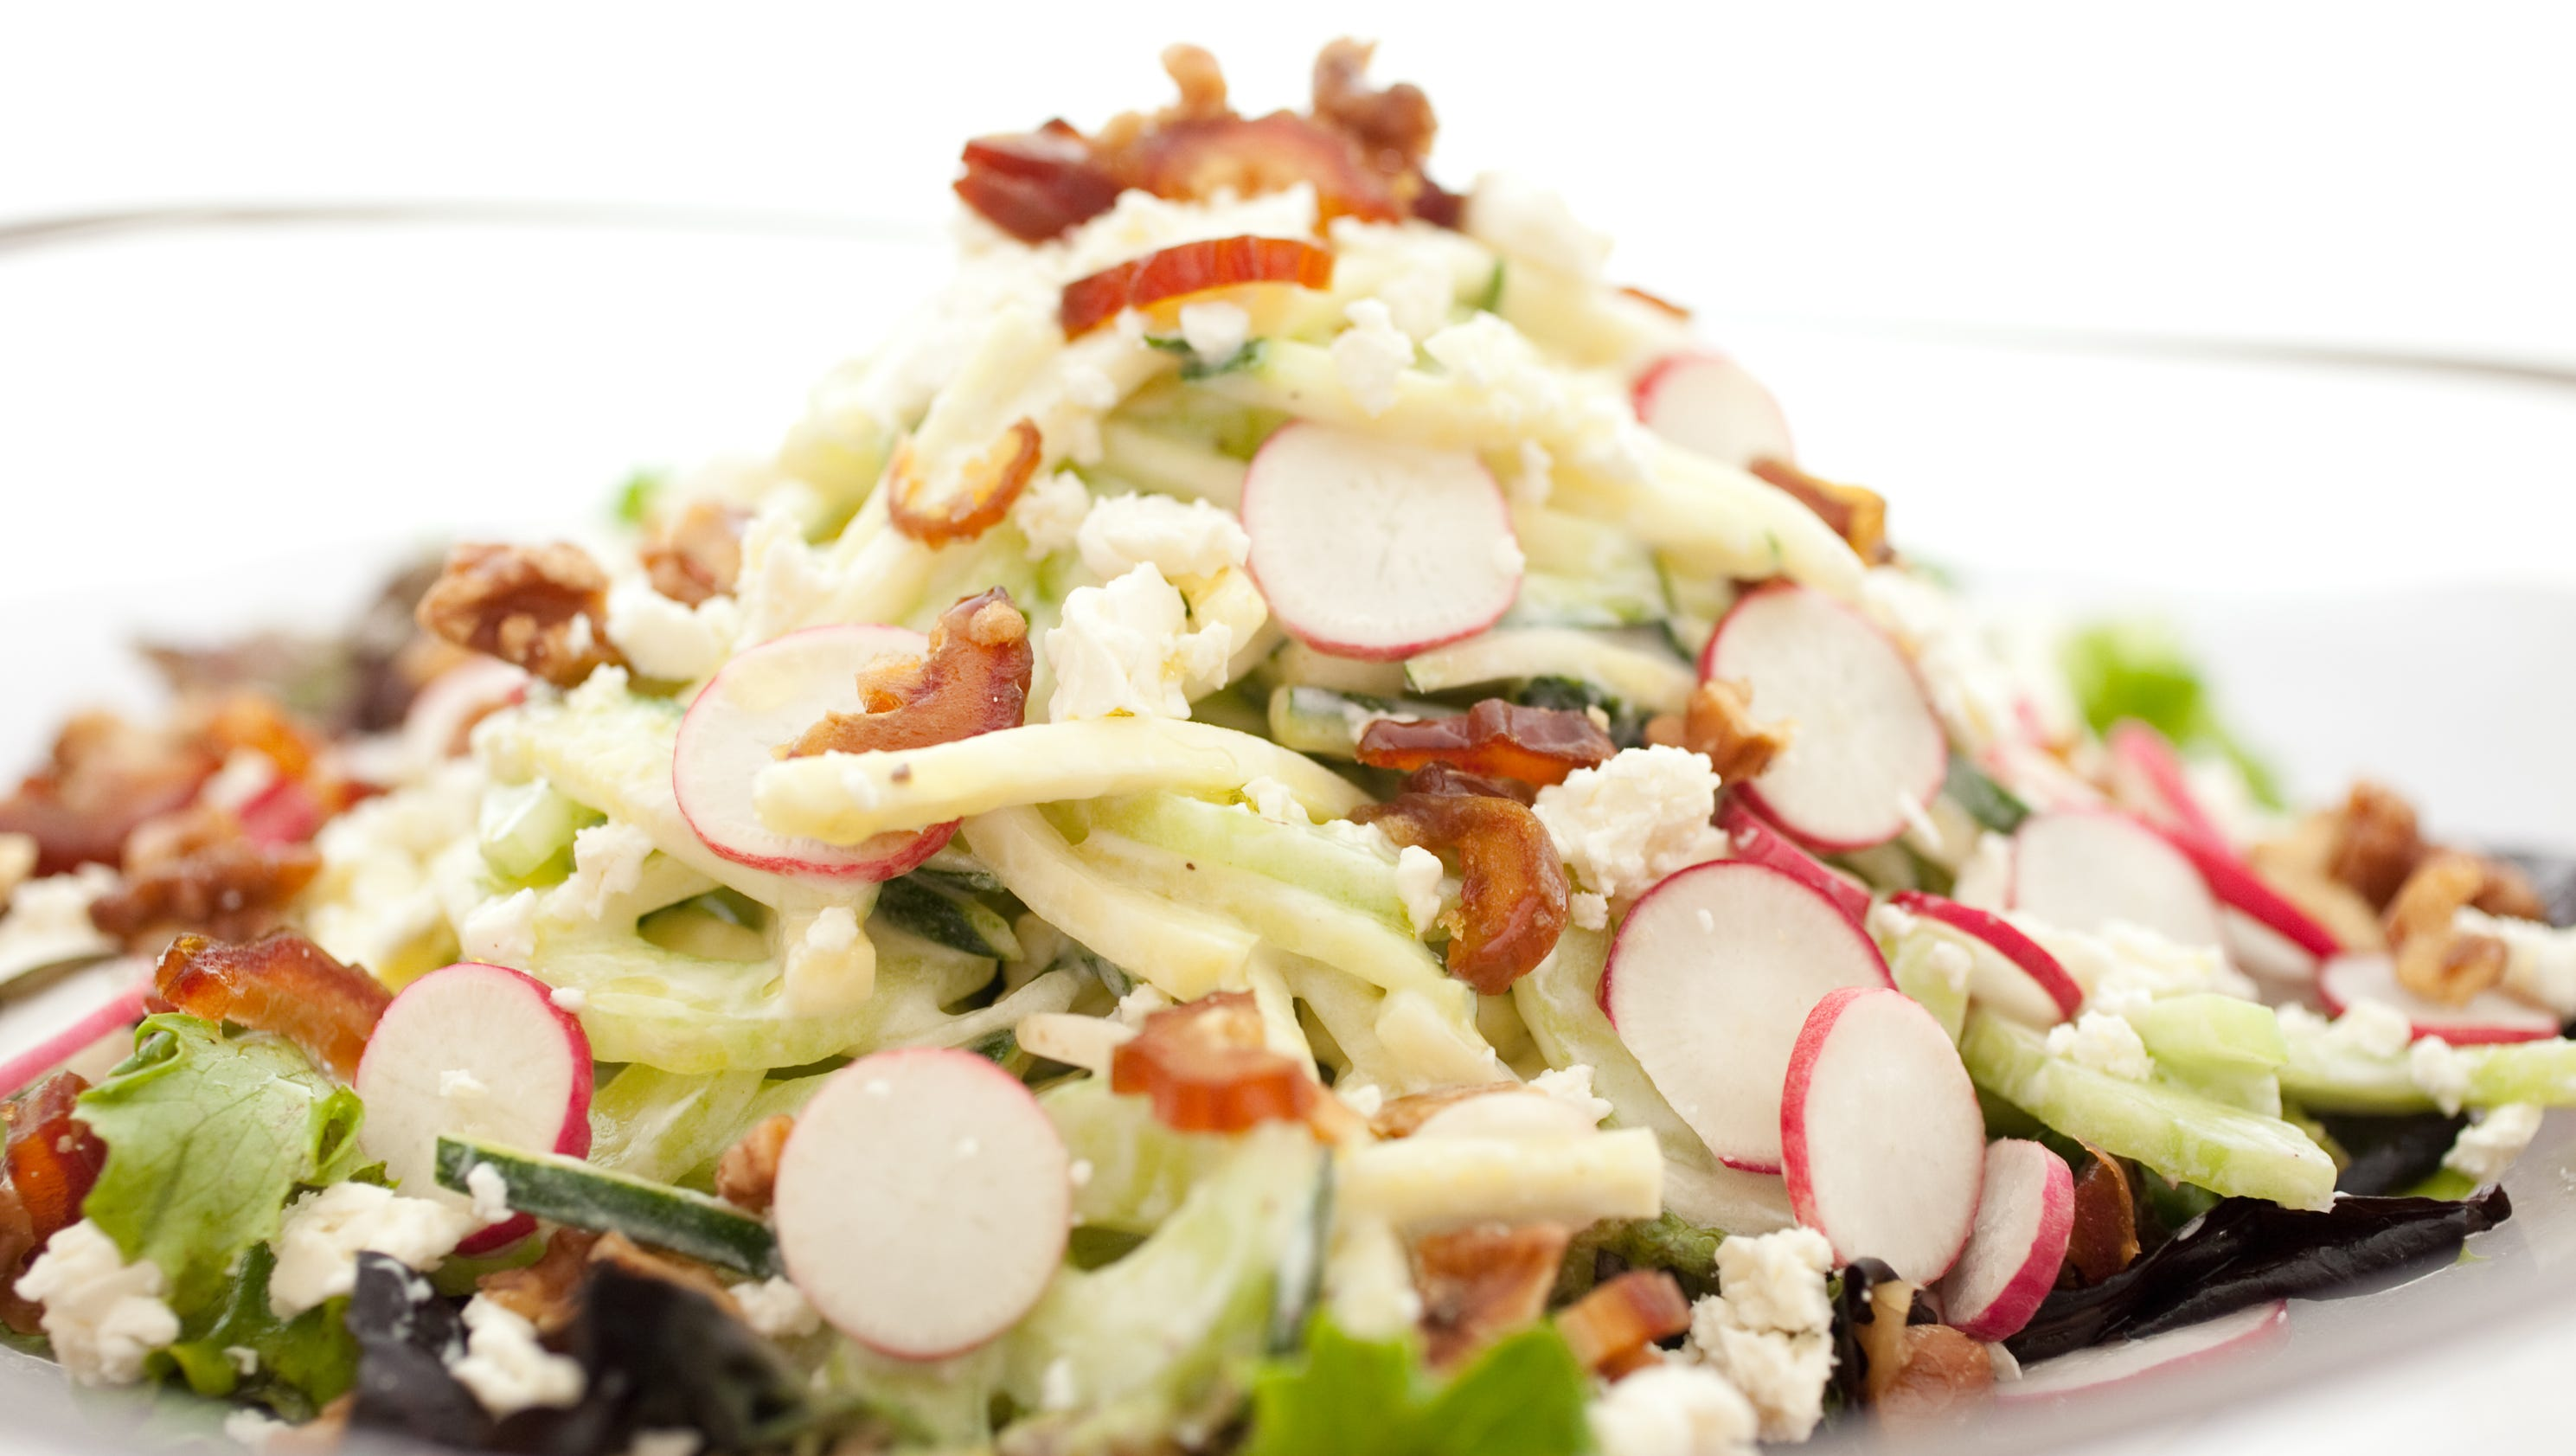 Zucchini and Cucumber Salad With Dates and Yogurt Dressing